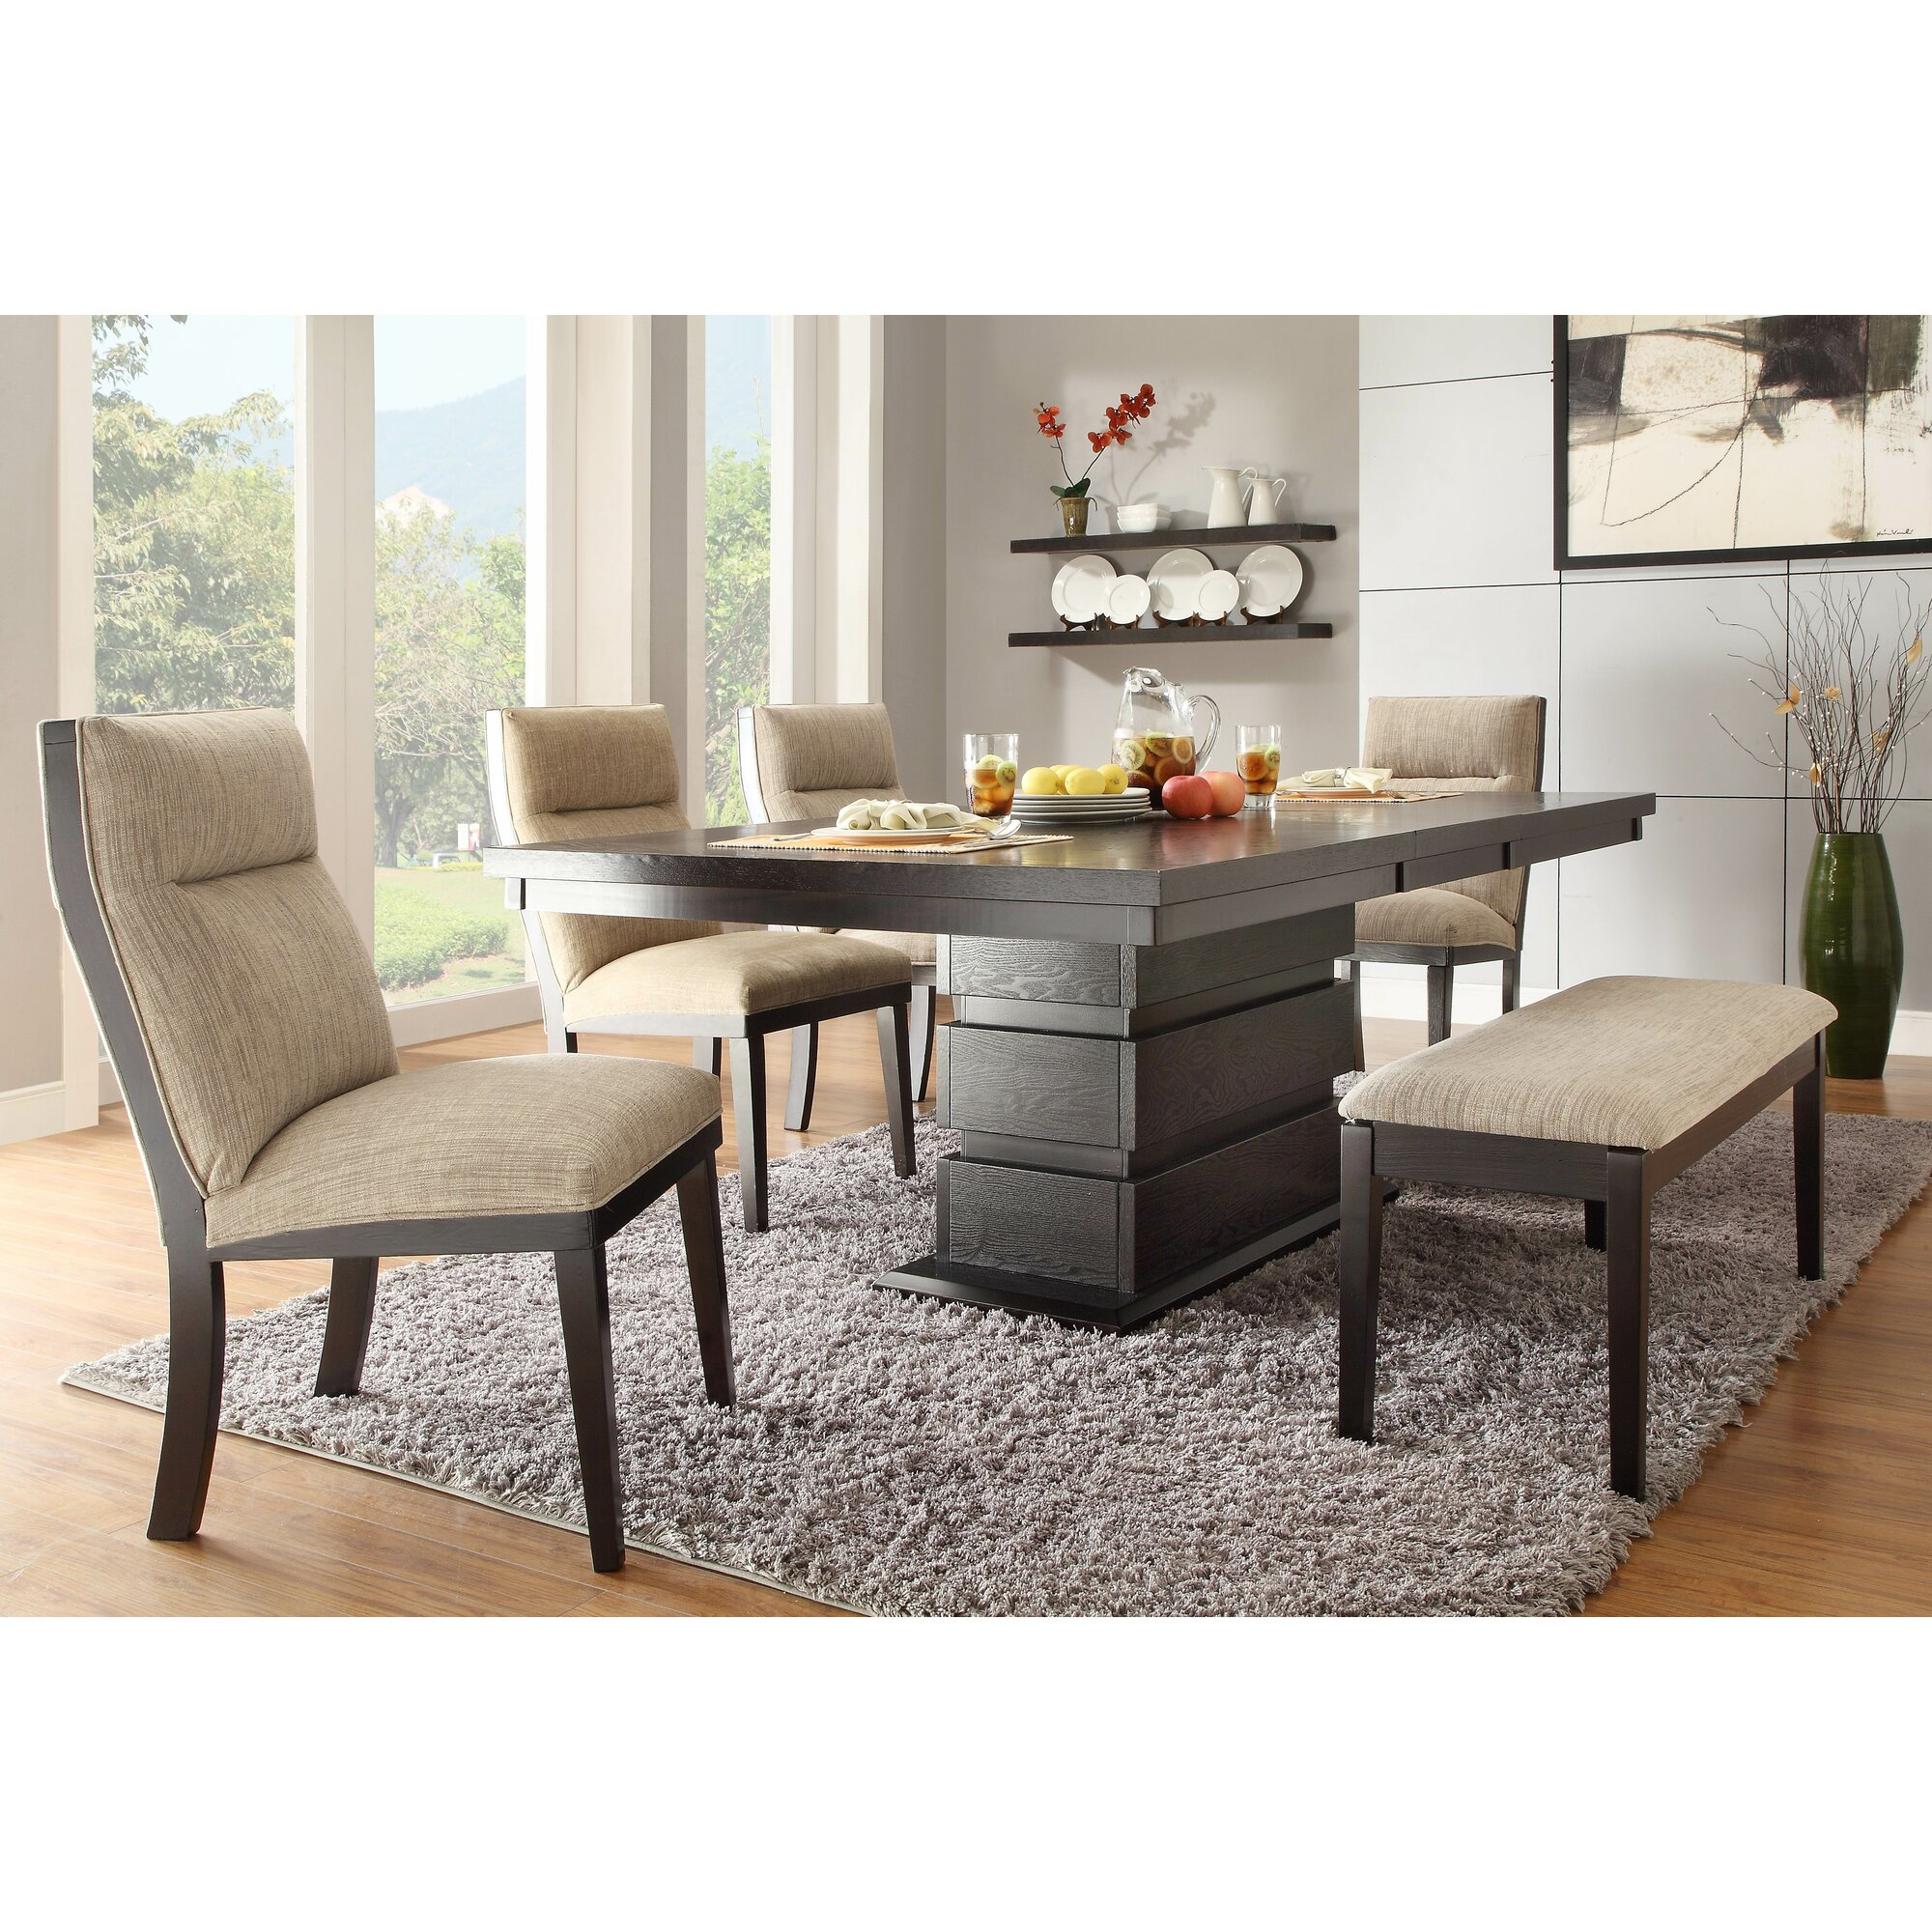 Latitude Run Leonor Extendable Dining Table & Reviews | Wayfair